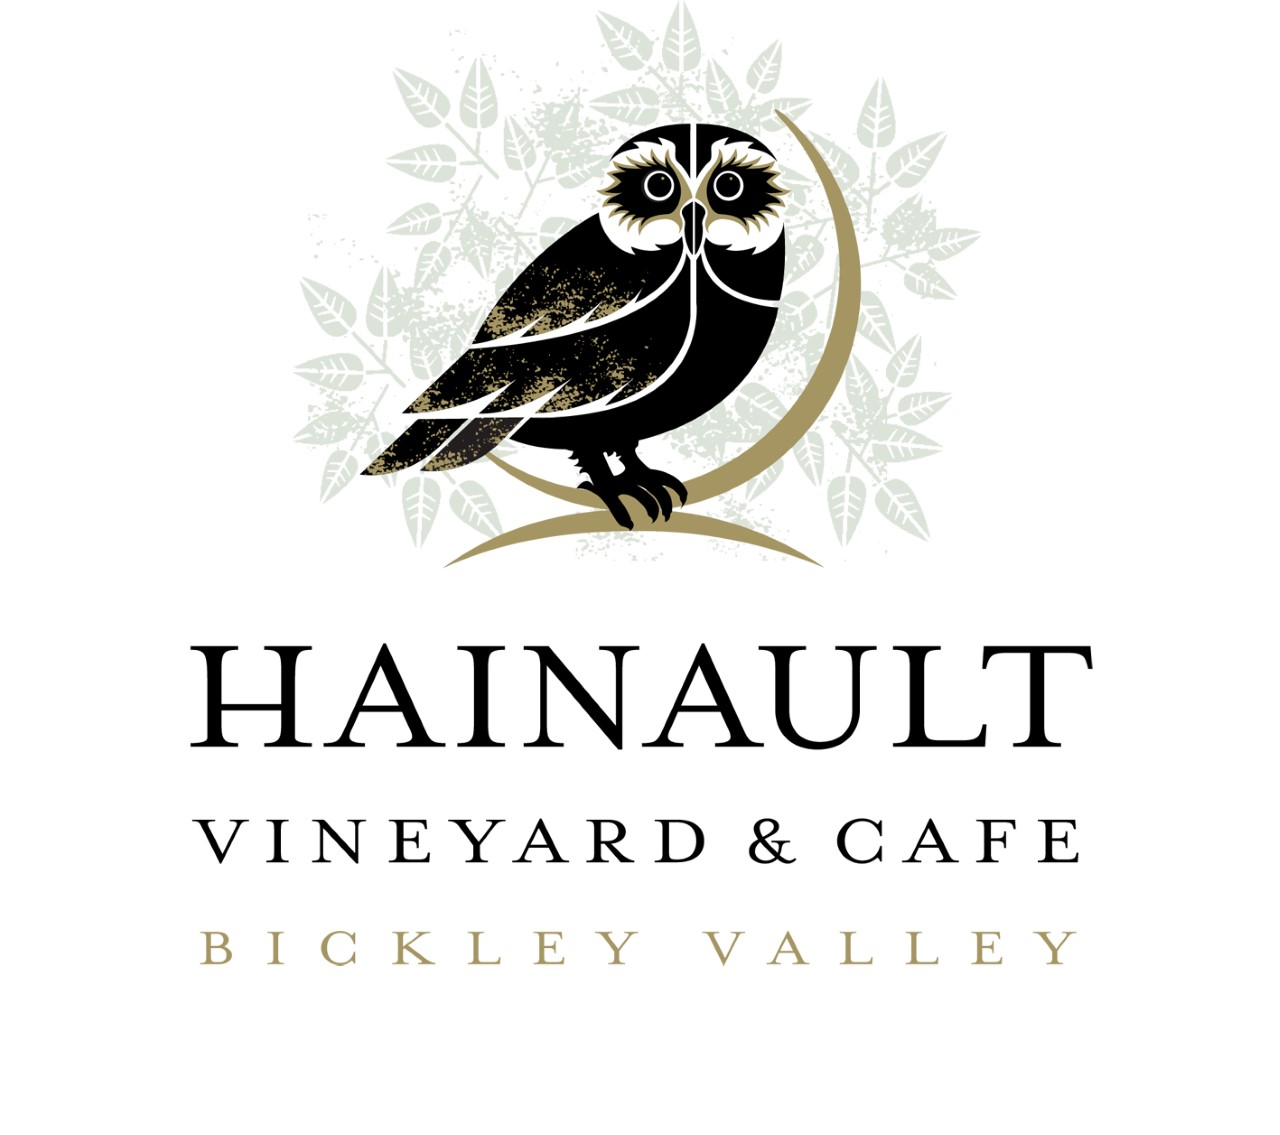 Hainault Vineyard & Cafe logo